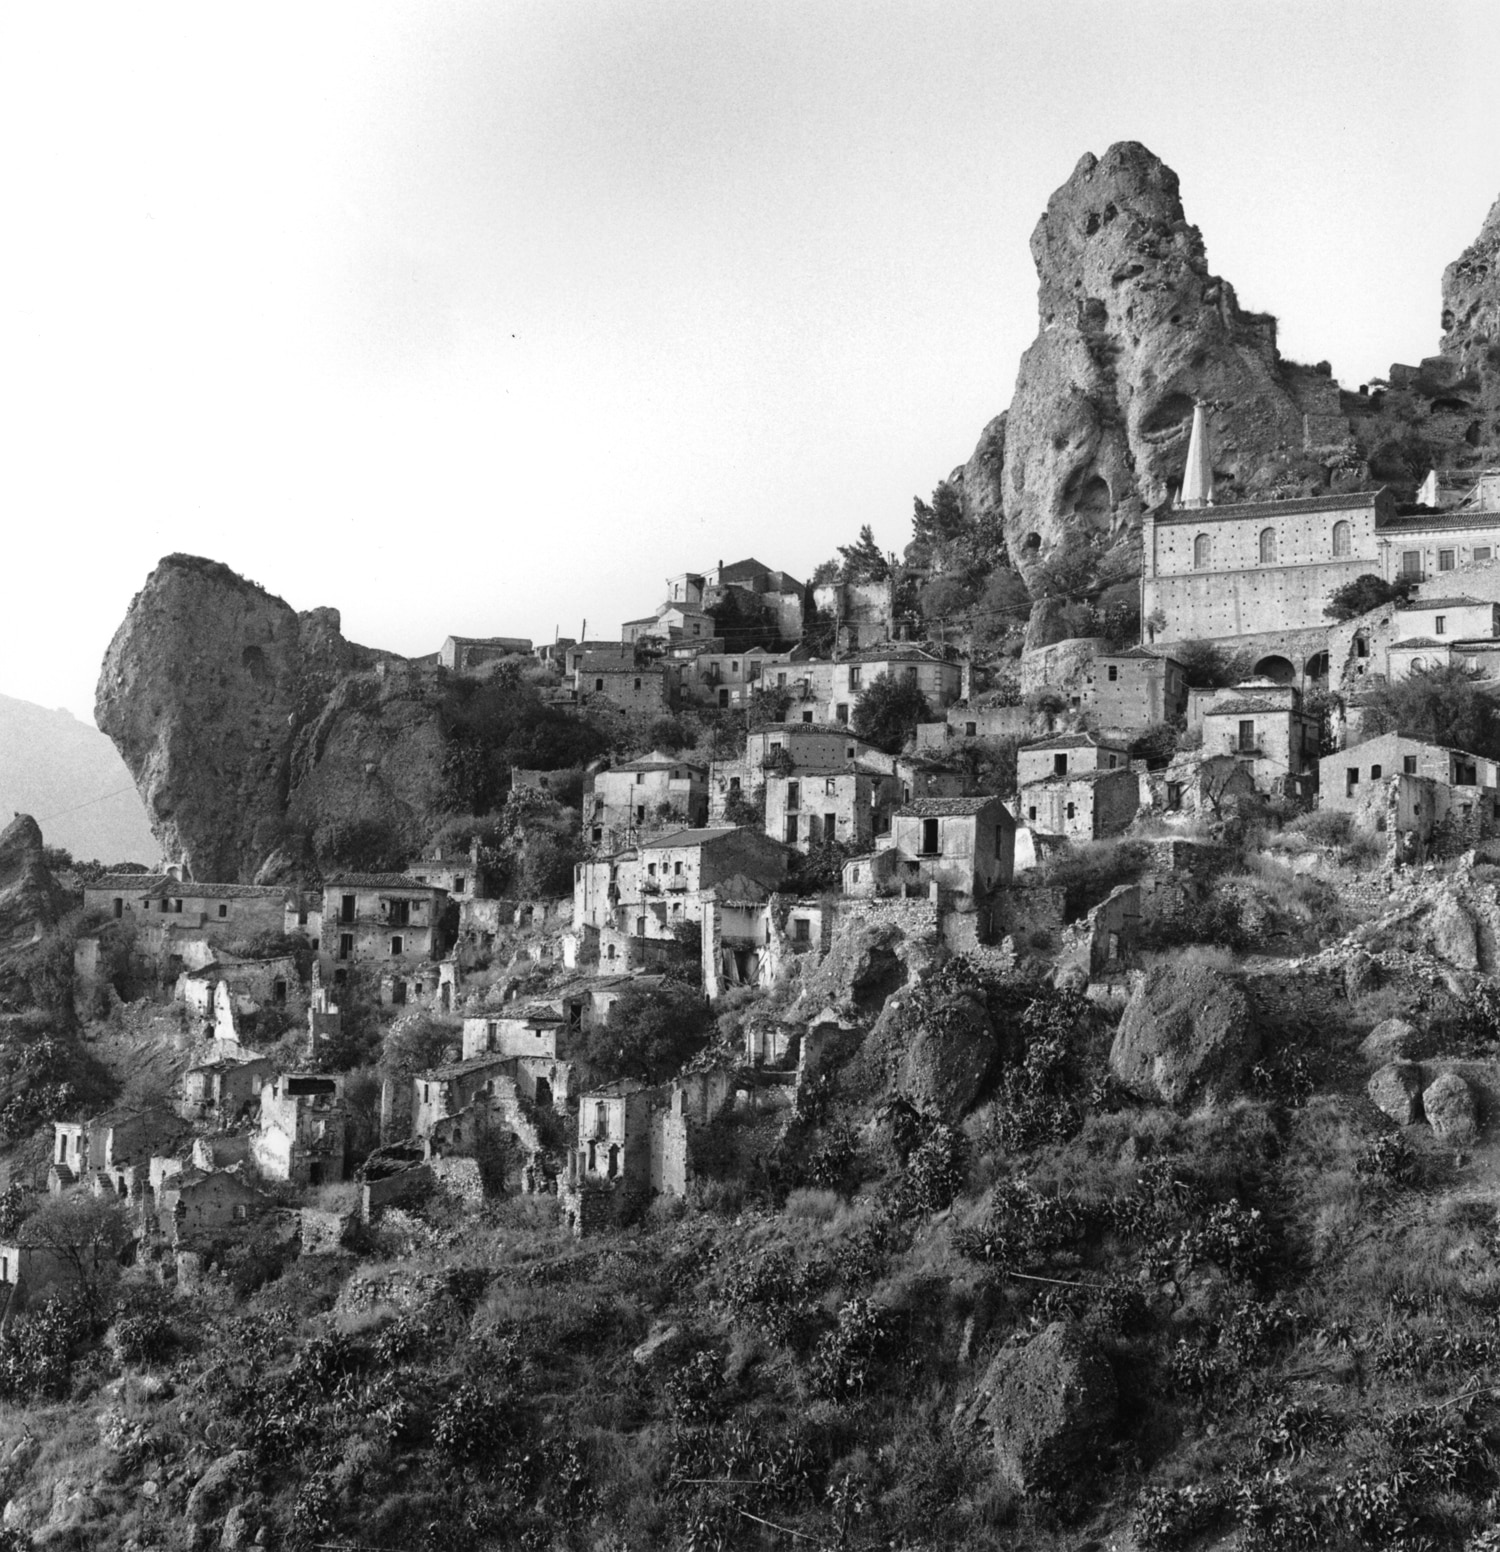 Pentedattilo, a village on the cliffs of Monte Calvario.